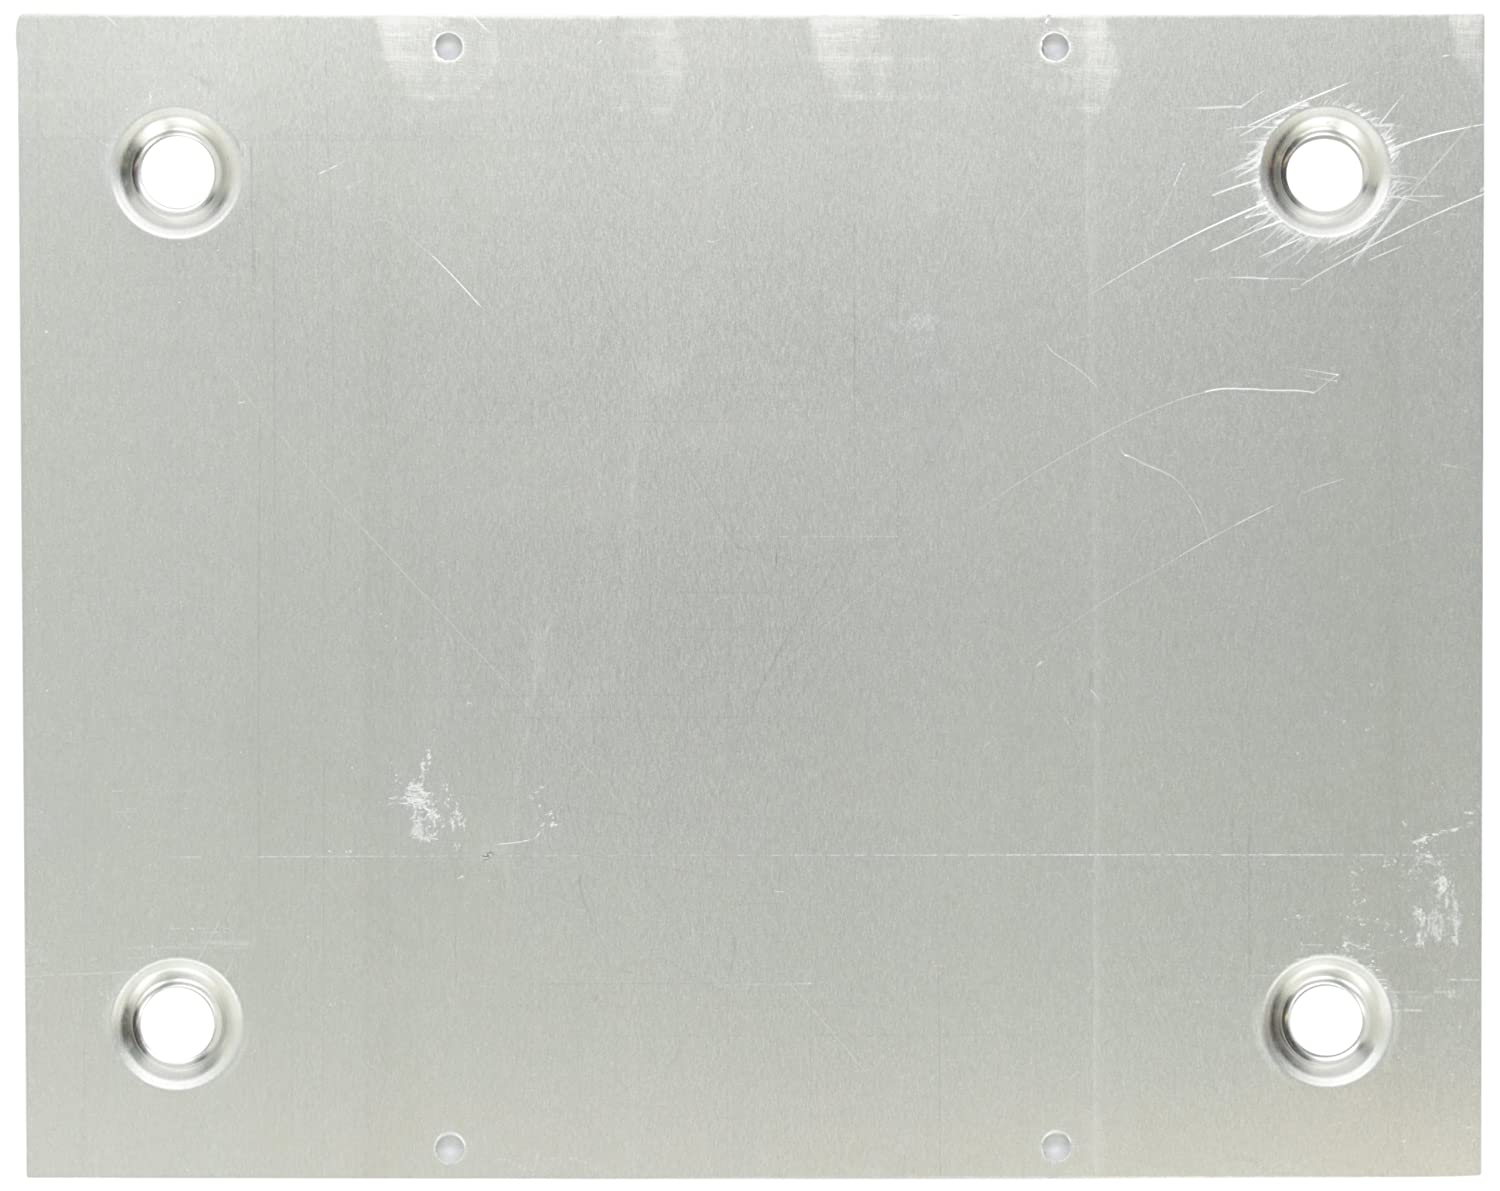 BUD Industries BPA 1518 Aluminum Chassis Bottom Plate 9 51 64 Length x 7 51 64 Width x 9 64 Thick Natural Finish